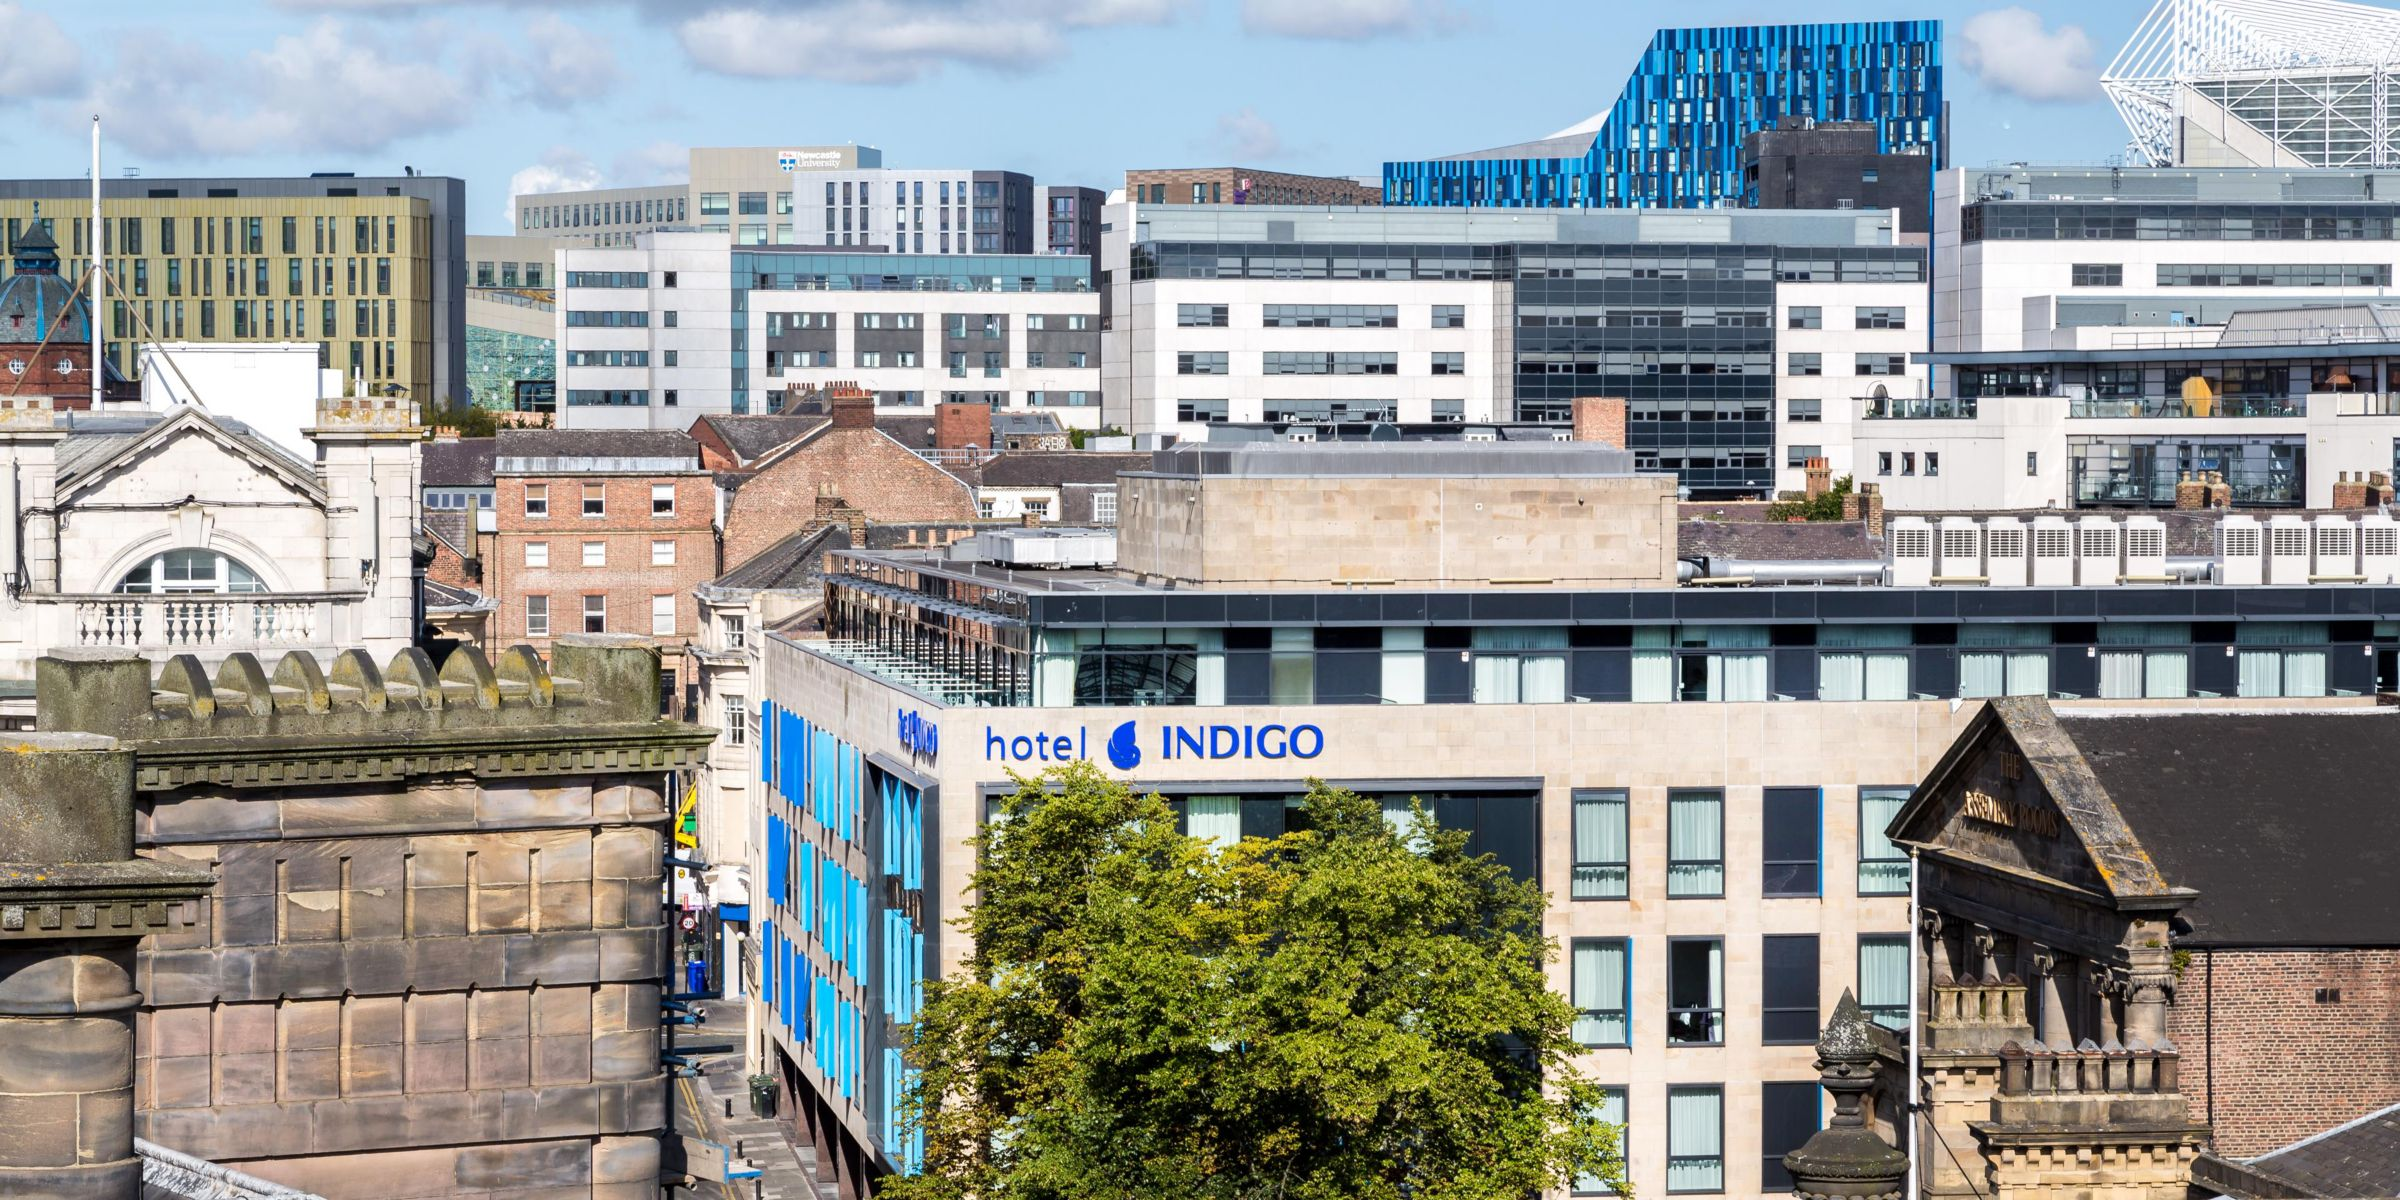 Indigo Newcastle Hotel Exterior A Short Stroll From The Train Station